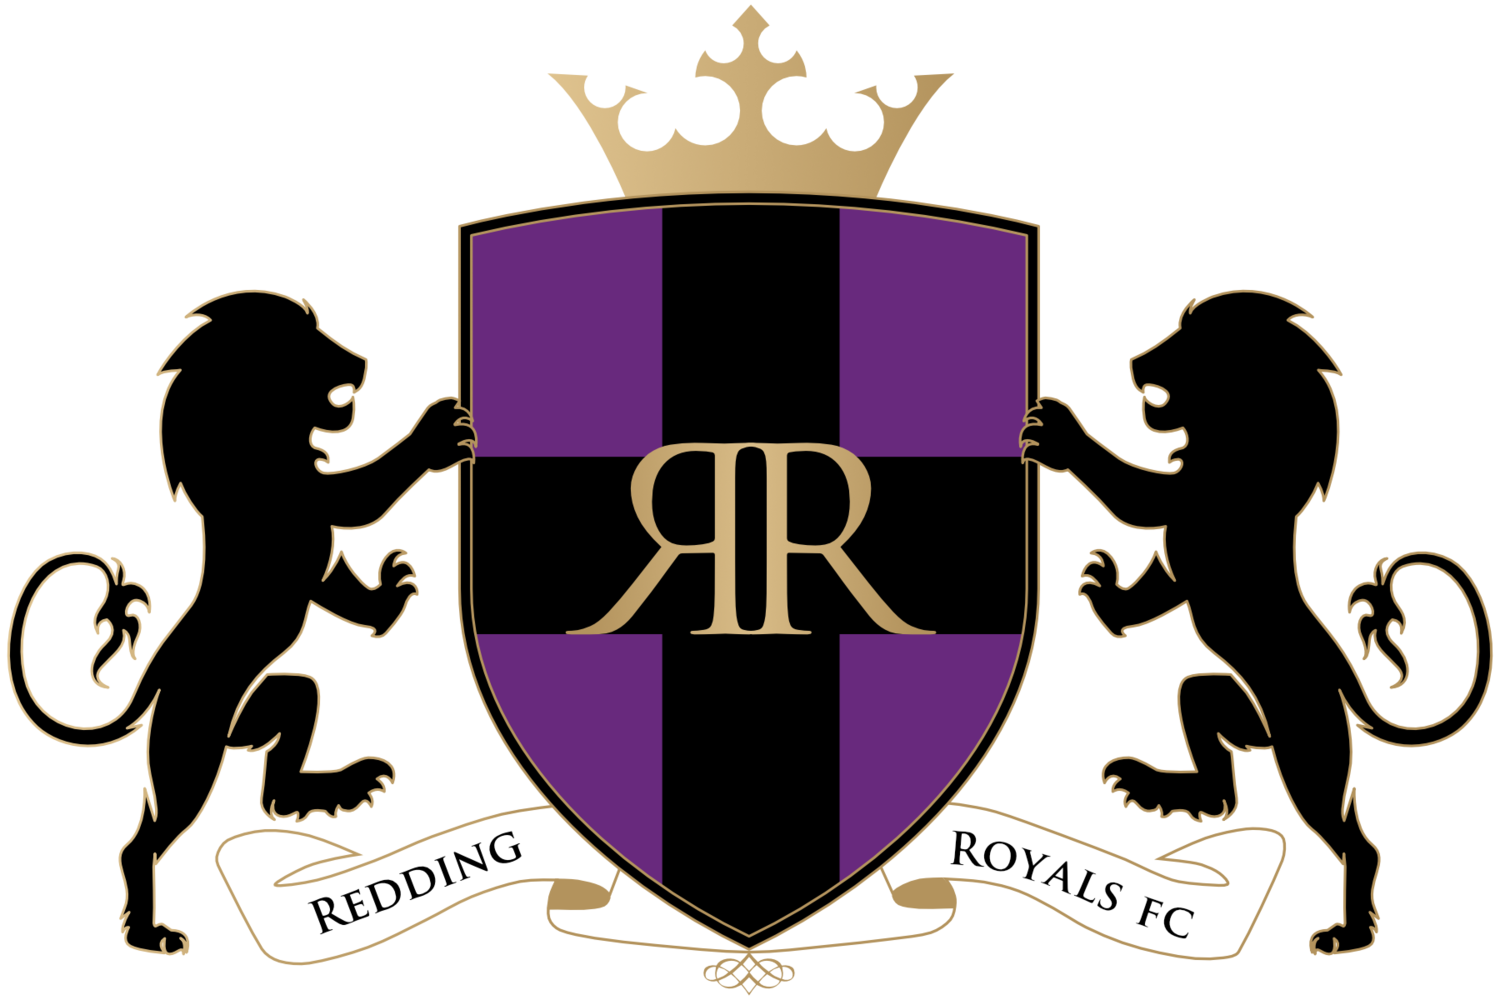 Redding Royals FC